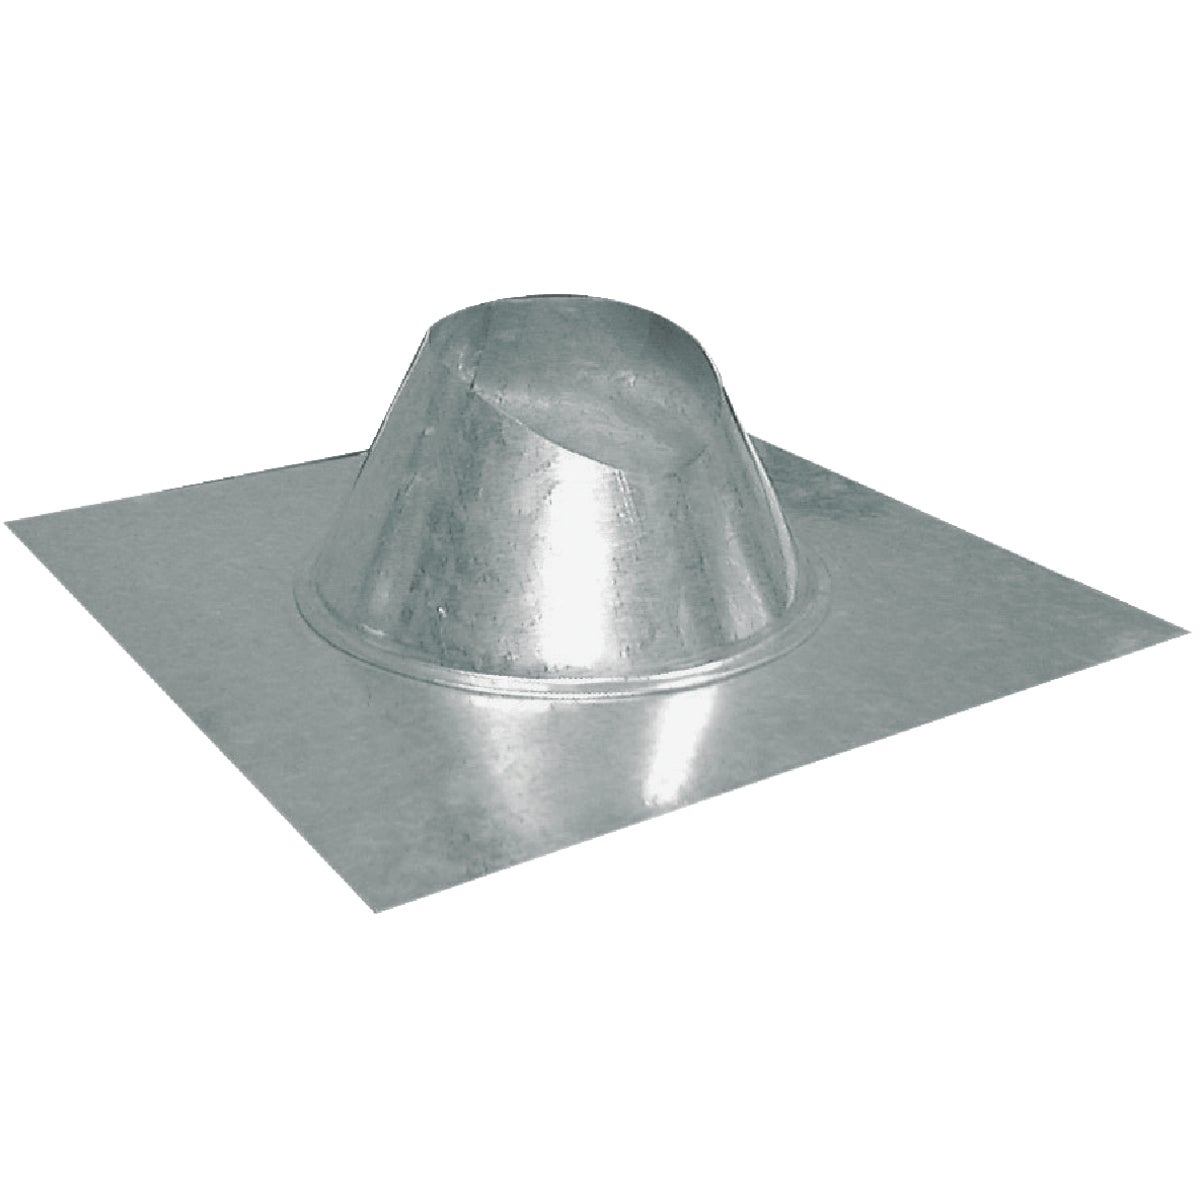 "7"" GALV ROOF FLASHING - GV1386 by Imperial Mfg Group"